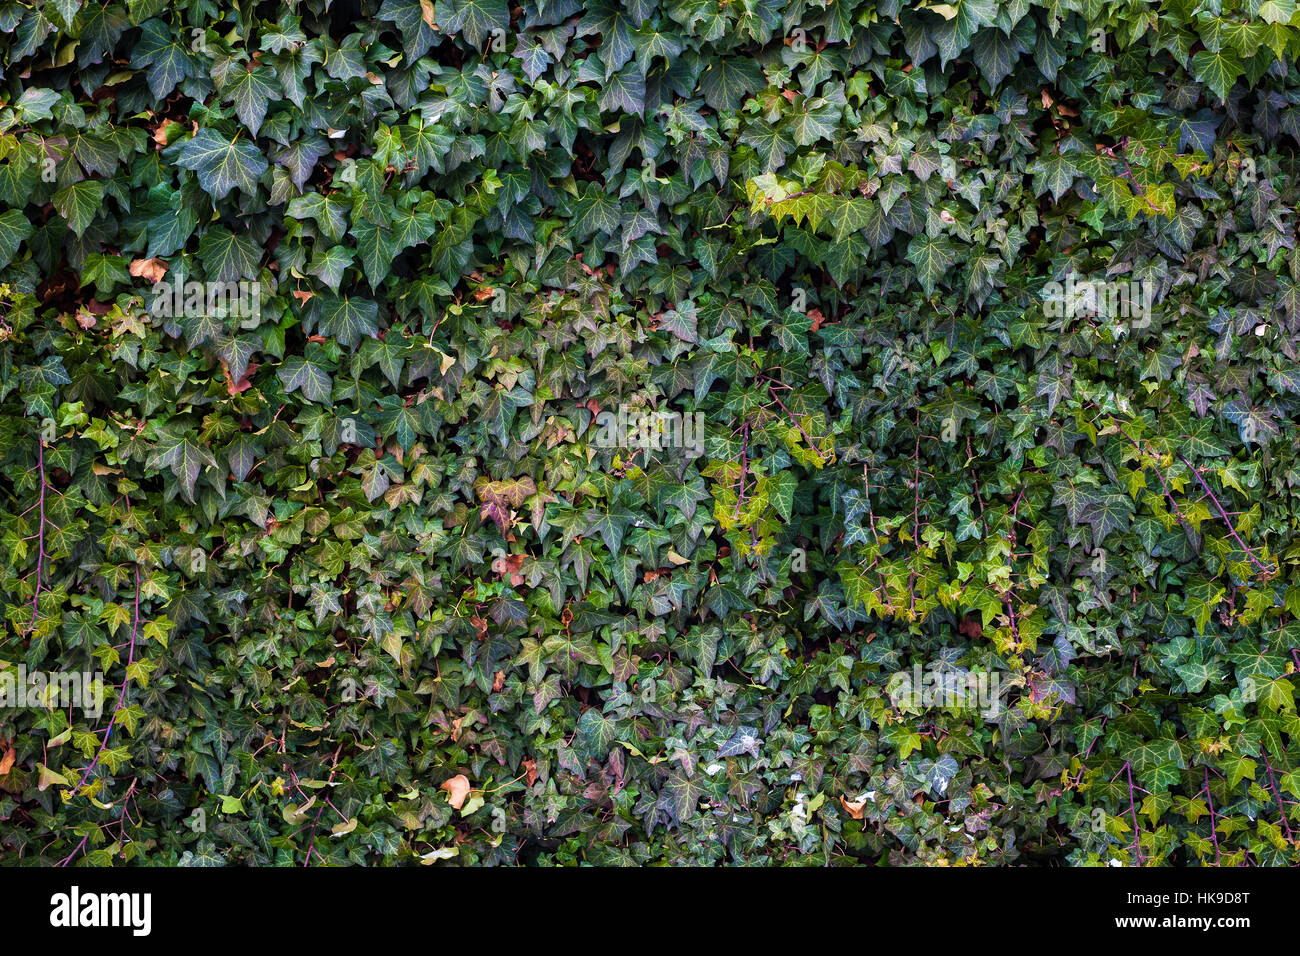 Abstract composition of a wall with lianas. - Stock Image